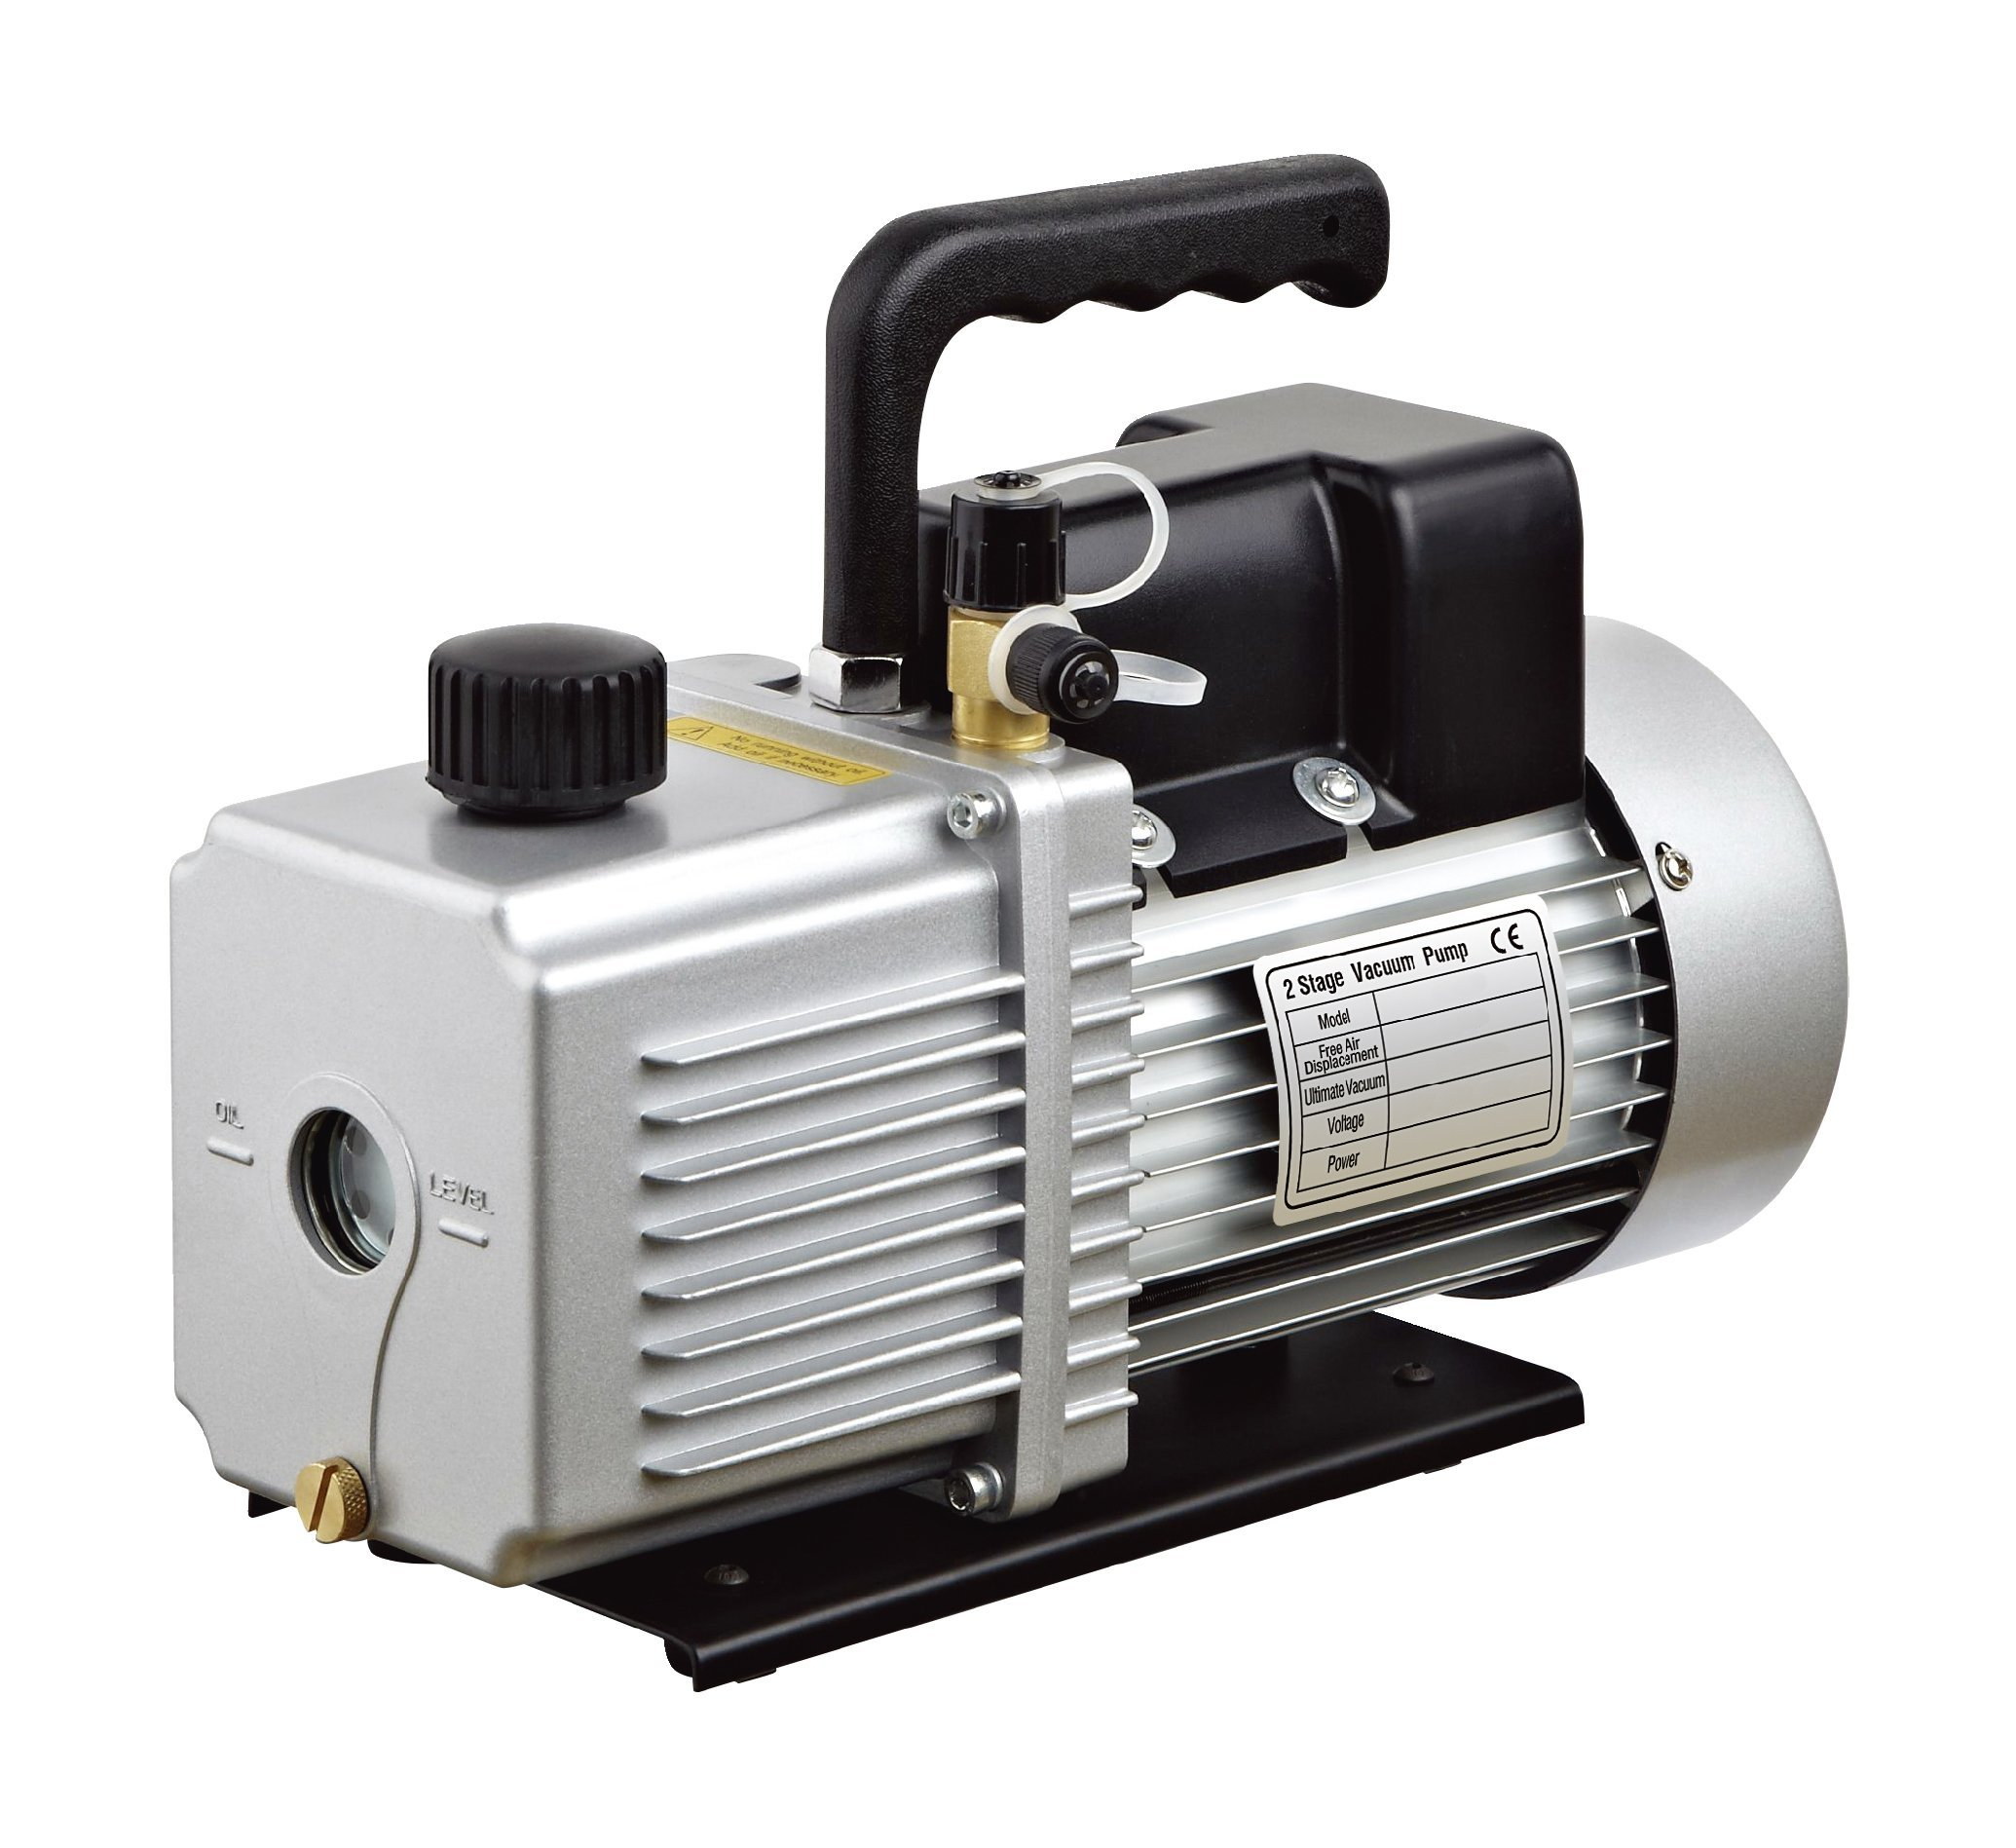 HFS (R) Vacuum Pump Double Stage 12CFM ; 340 L/min ; 110V/60HZ ; Inlet port: 1/4'' and 3/8'' SAE; Ultimate Vacuum: 0.2Pa or 15 microns, Power1HP